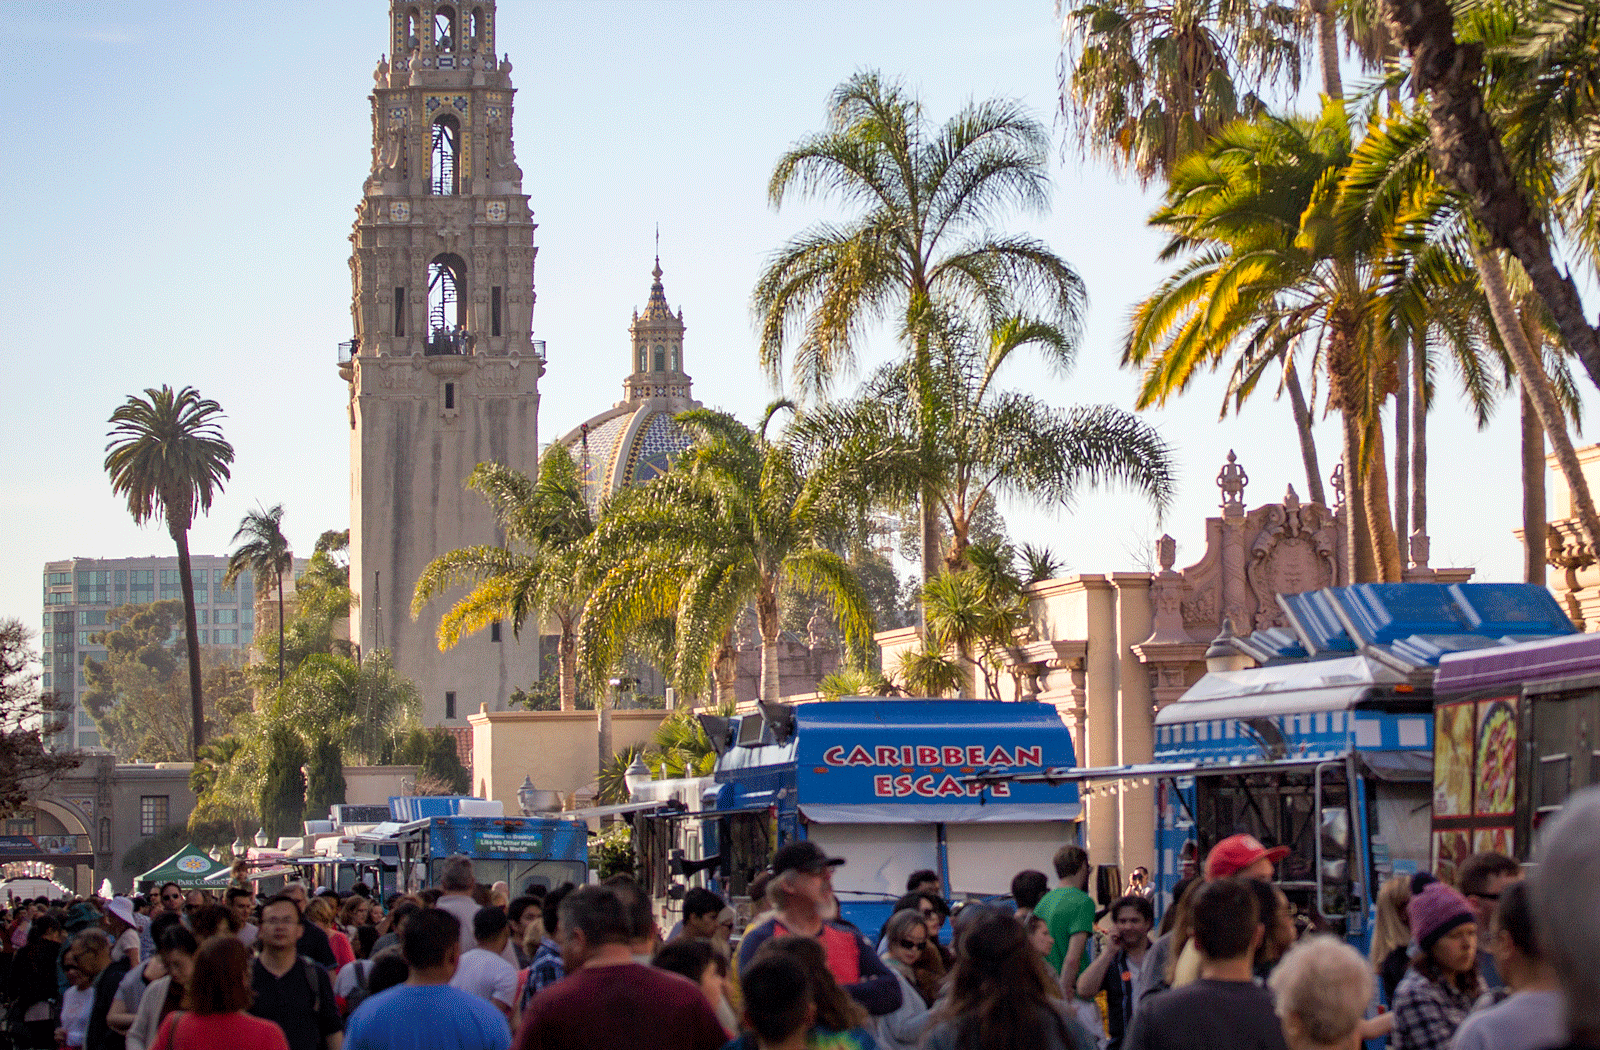 Balboa Park Events - What to Do in San Diego's Cultural